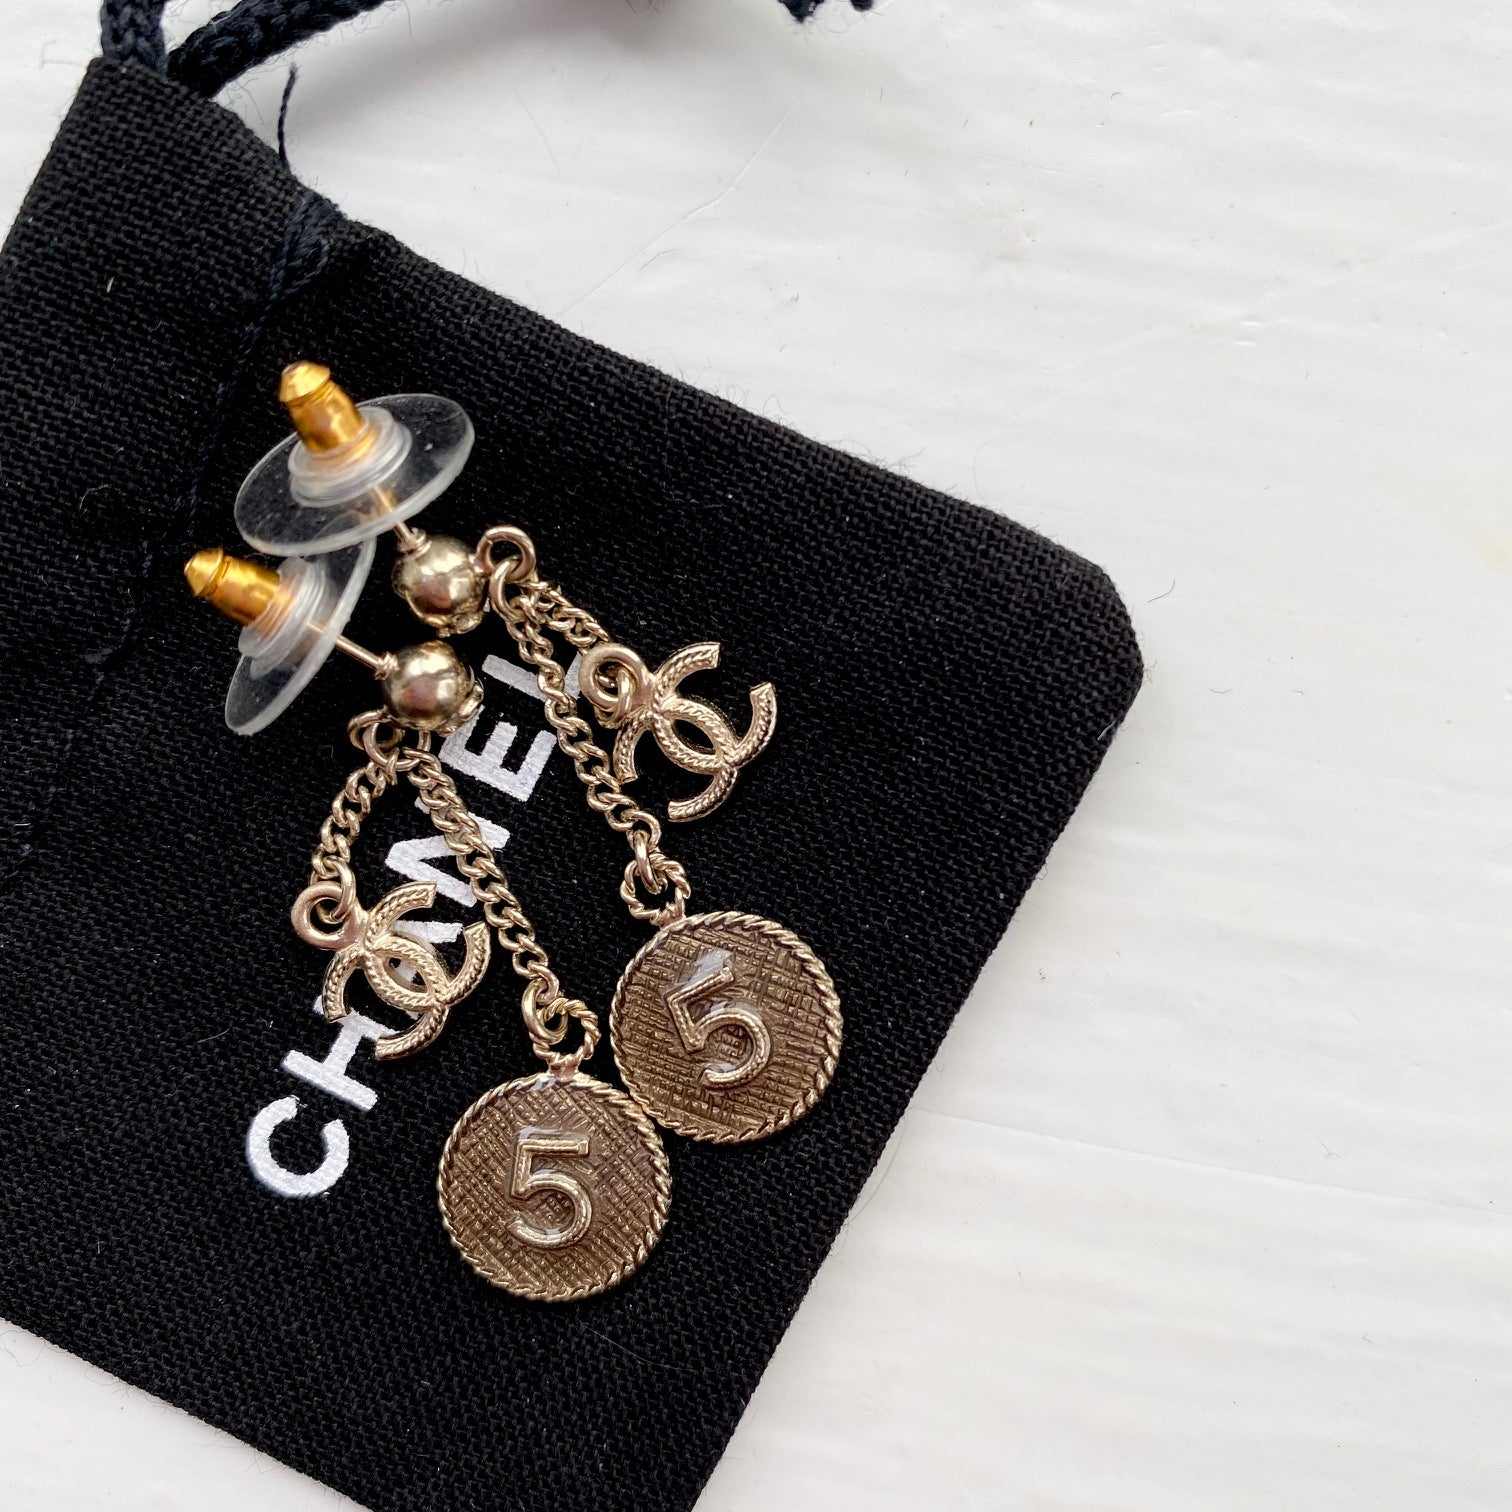 Chanel 5 Earrings